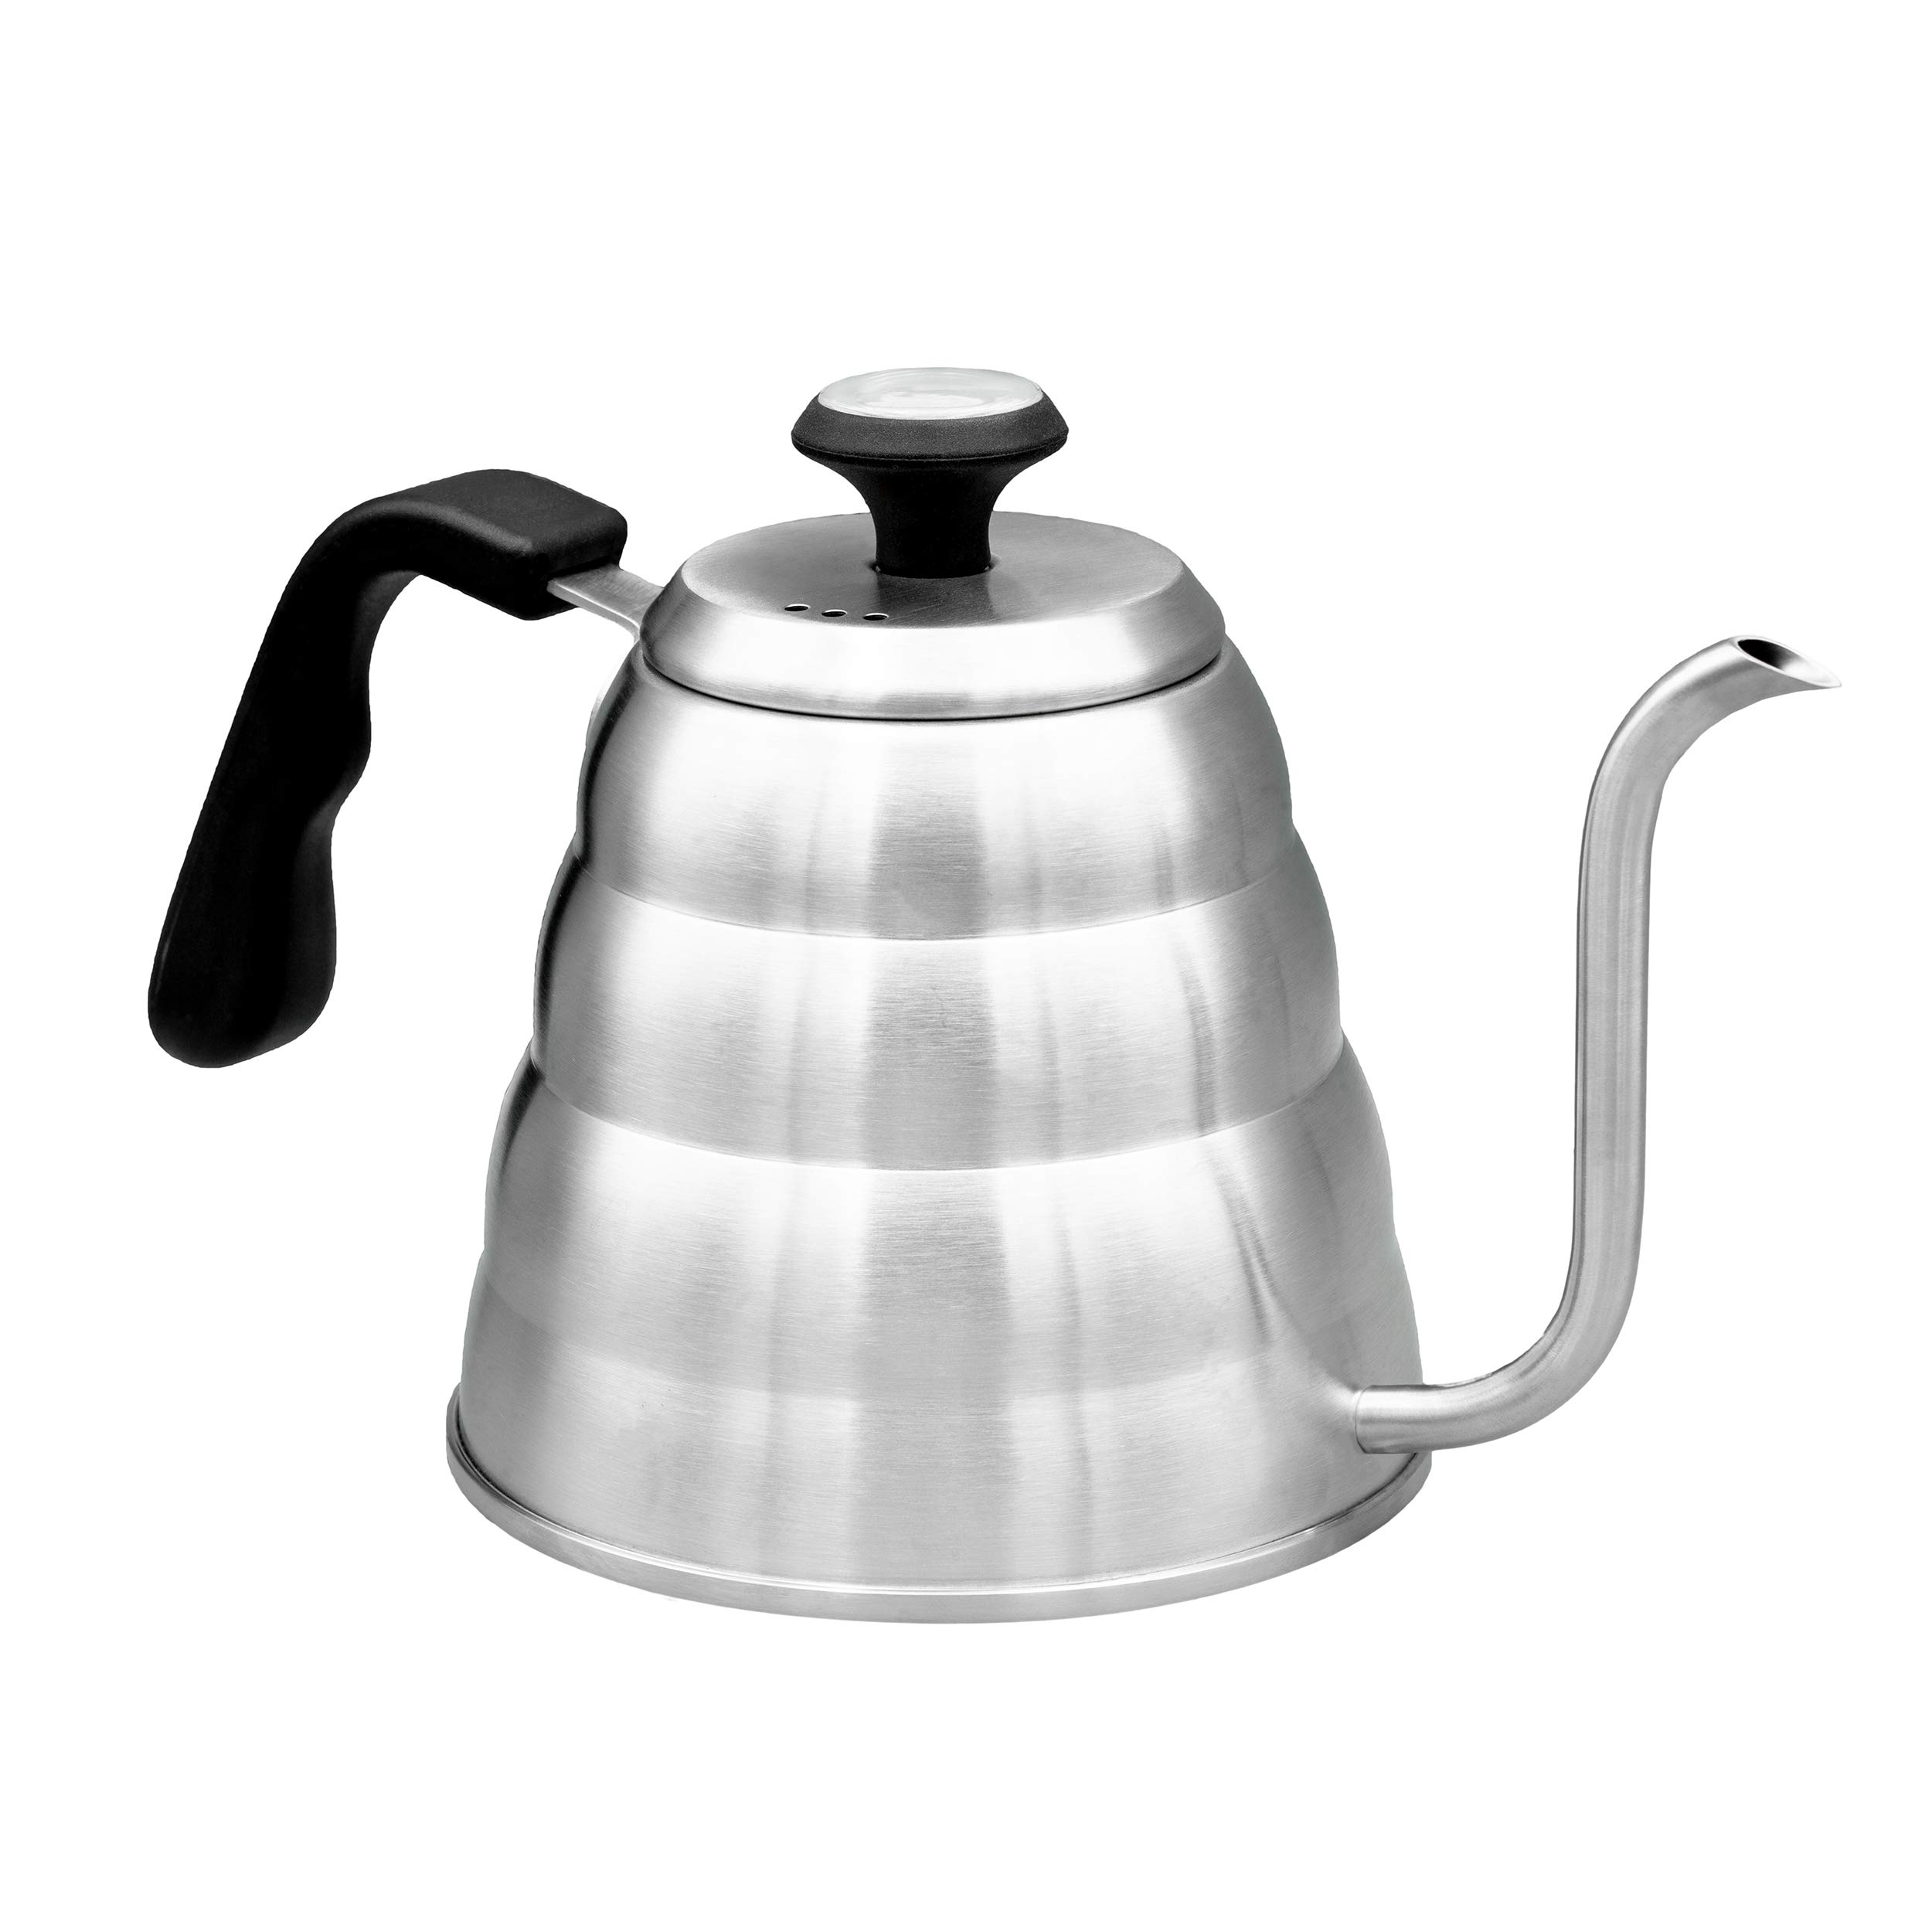 Pour Over Coffee Kettle With Gooseneck Spout by Culinary Foundry - 1.2 Liter Capacity Made of Premium Stainless Steel With Built-In Thermometer - Achieves Perfect Water Temperature Every Time by Culinary Foundry (Image #5)